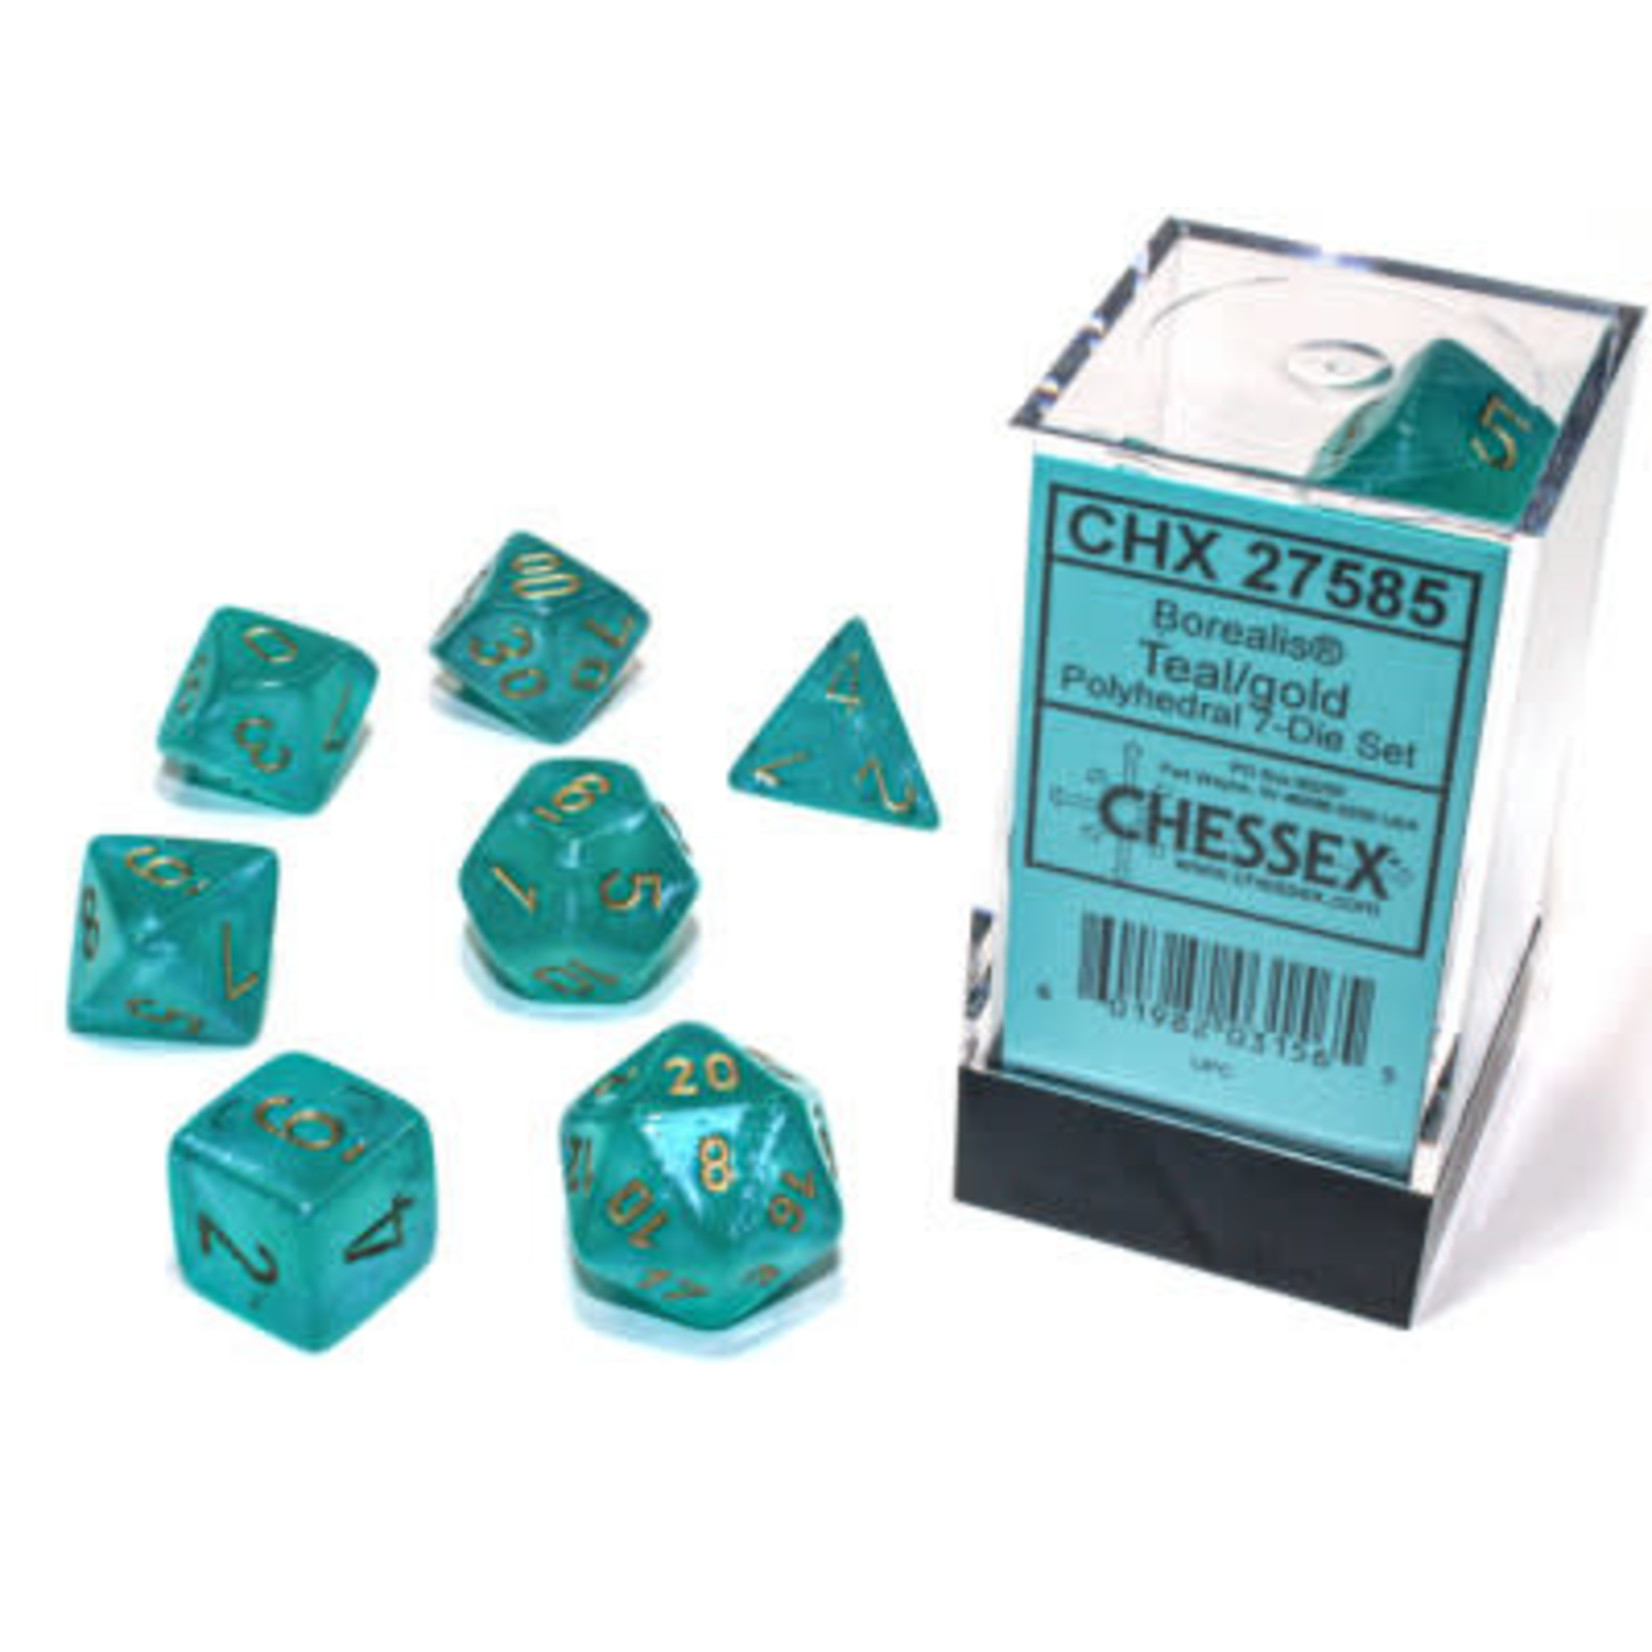 Chessex Set 7D Poly Borealis Luminary Teal/Gold